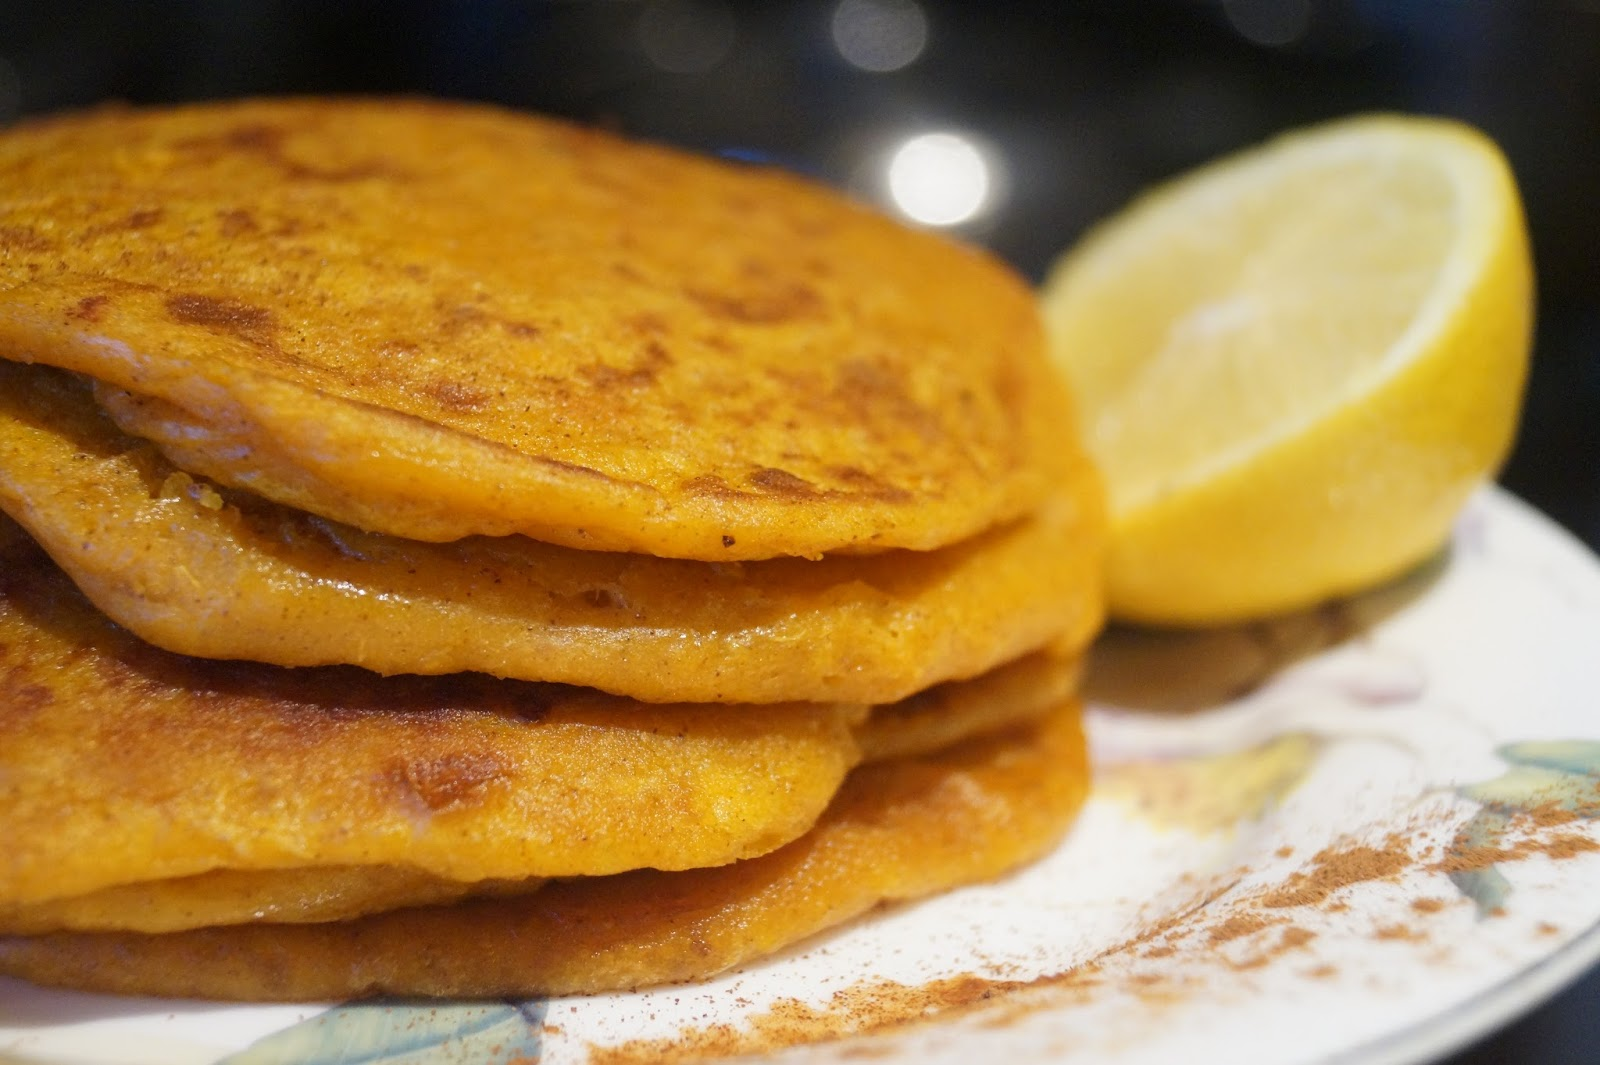 The vegan nigerian breakfast 7 sweet potato pancakes a wholesome way to start the day the touch of cinnamon also creates a warm christmassy aroma that fills the entire house ccuart Gallery